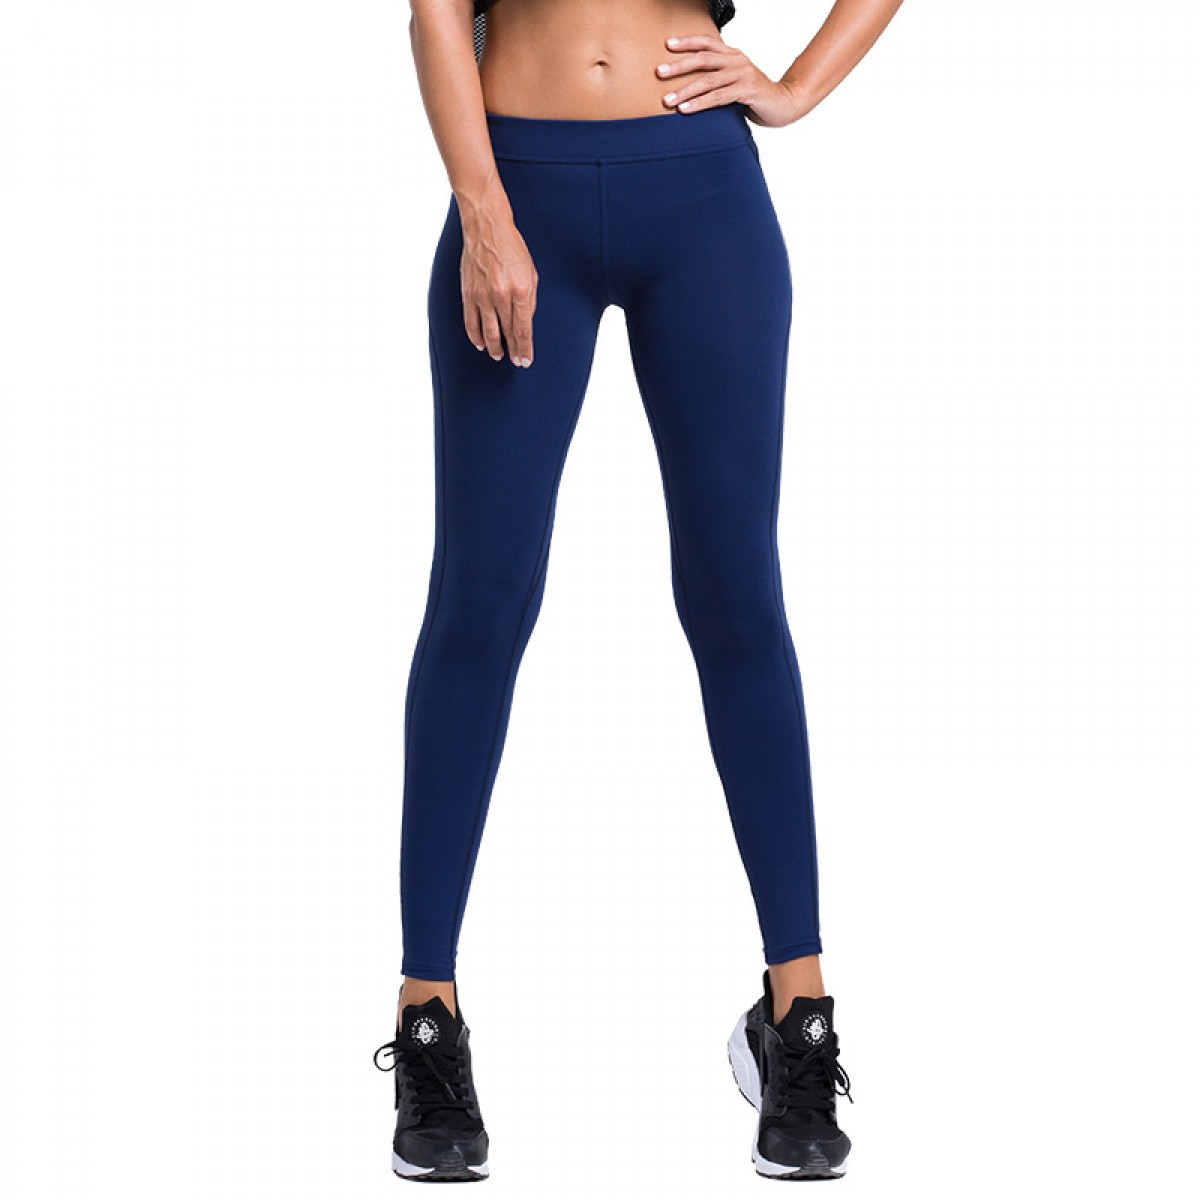 Shaping Up Effect Pants Perfect For Yoga,dance,jogging